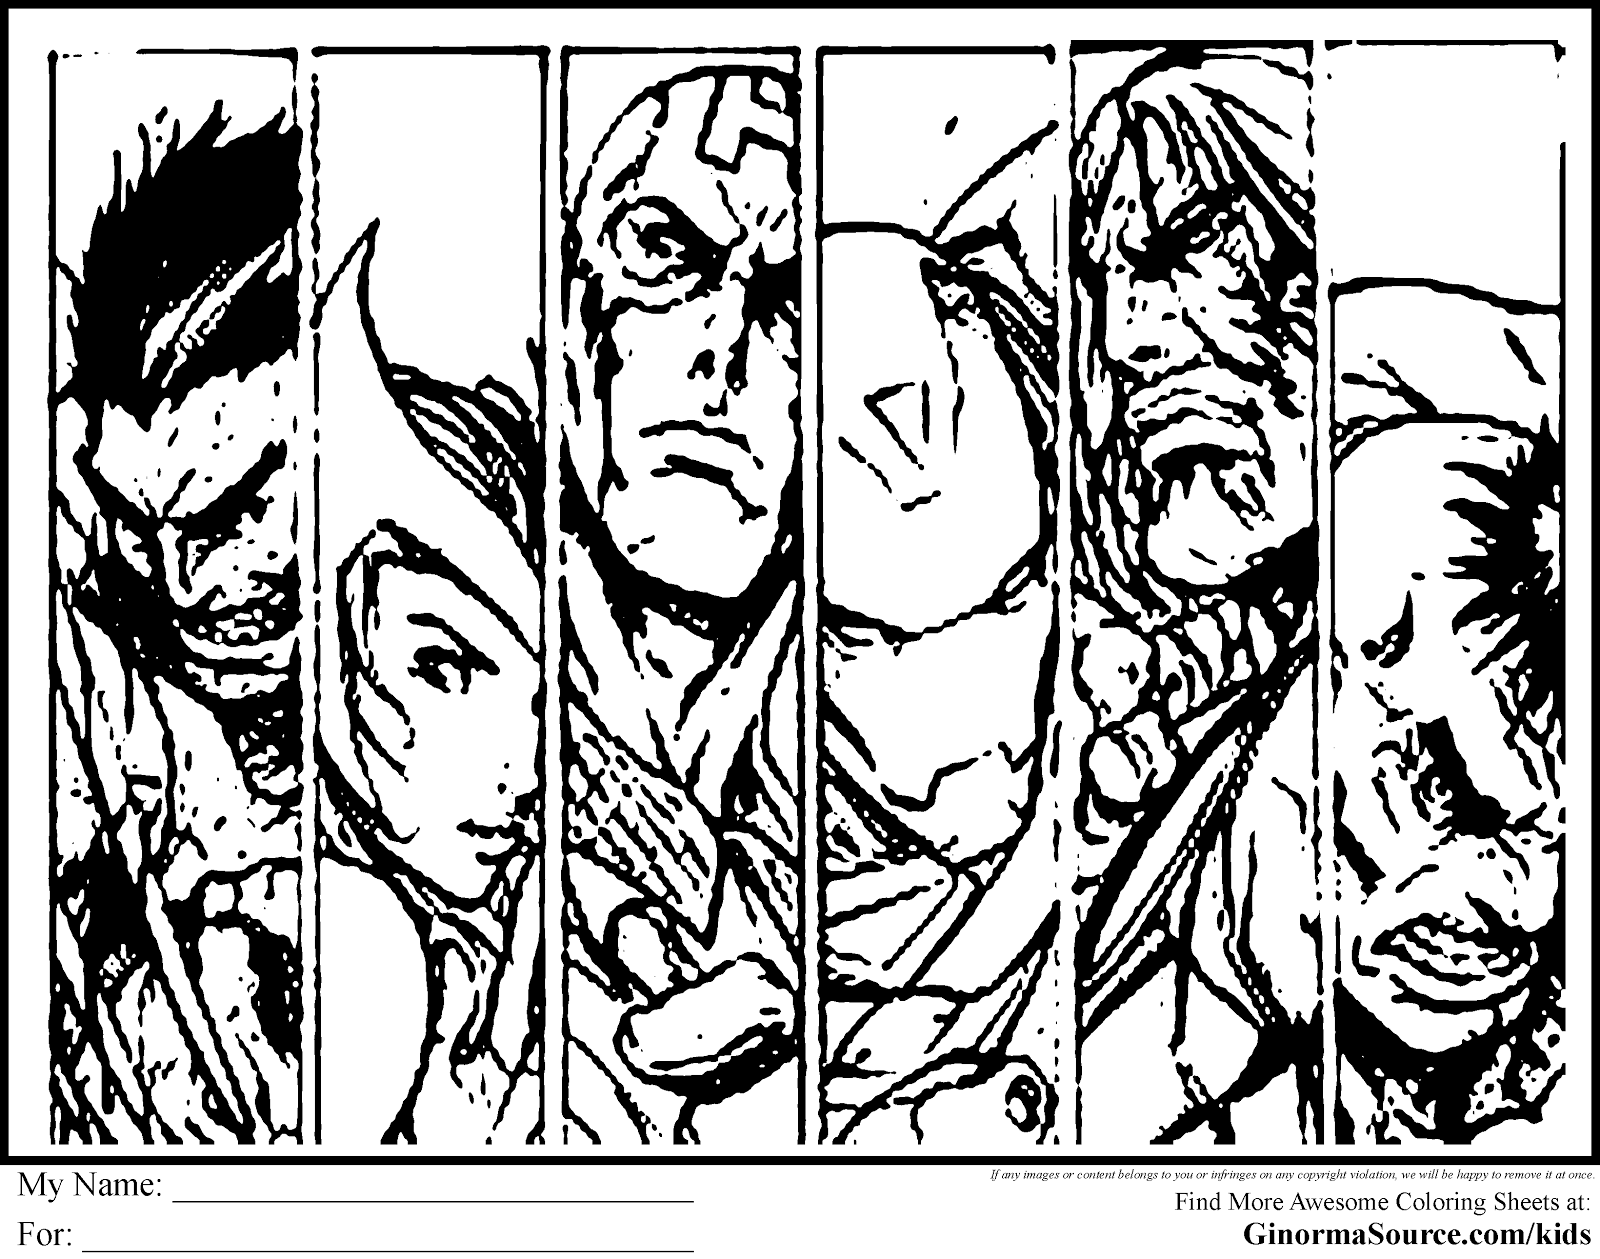 avengers coloring sheet coloring pages for kids free images iron man avengers coloring avengers sheet